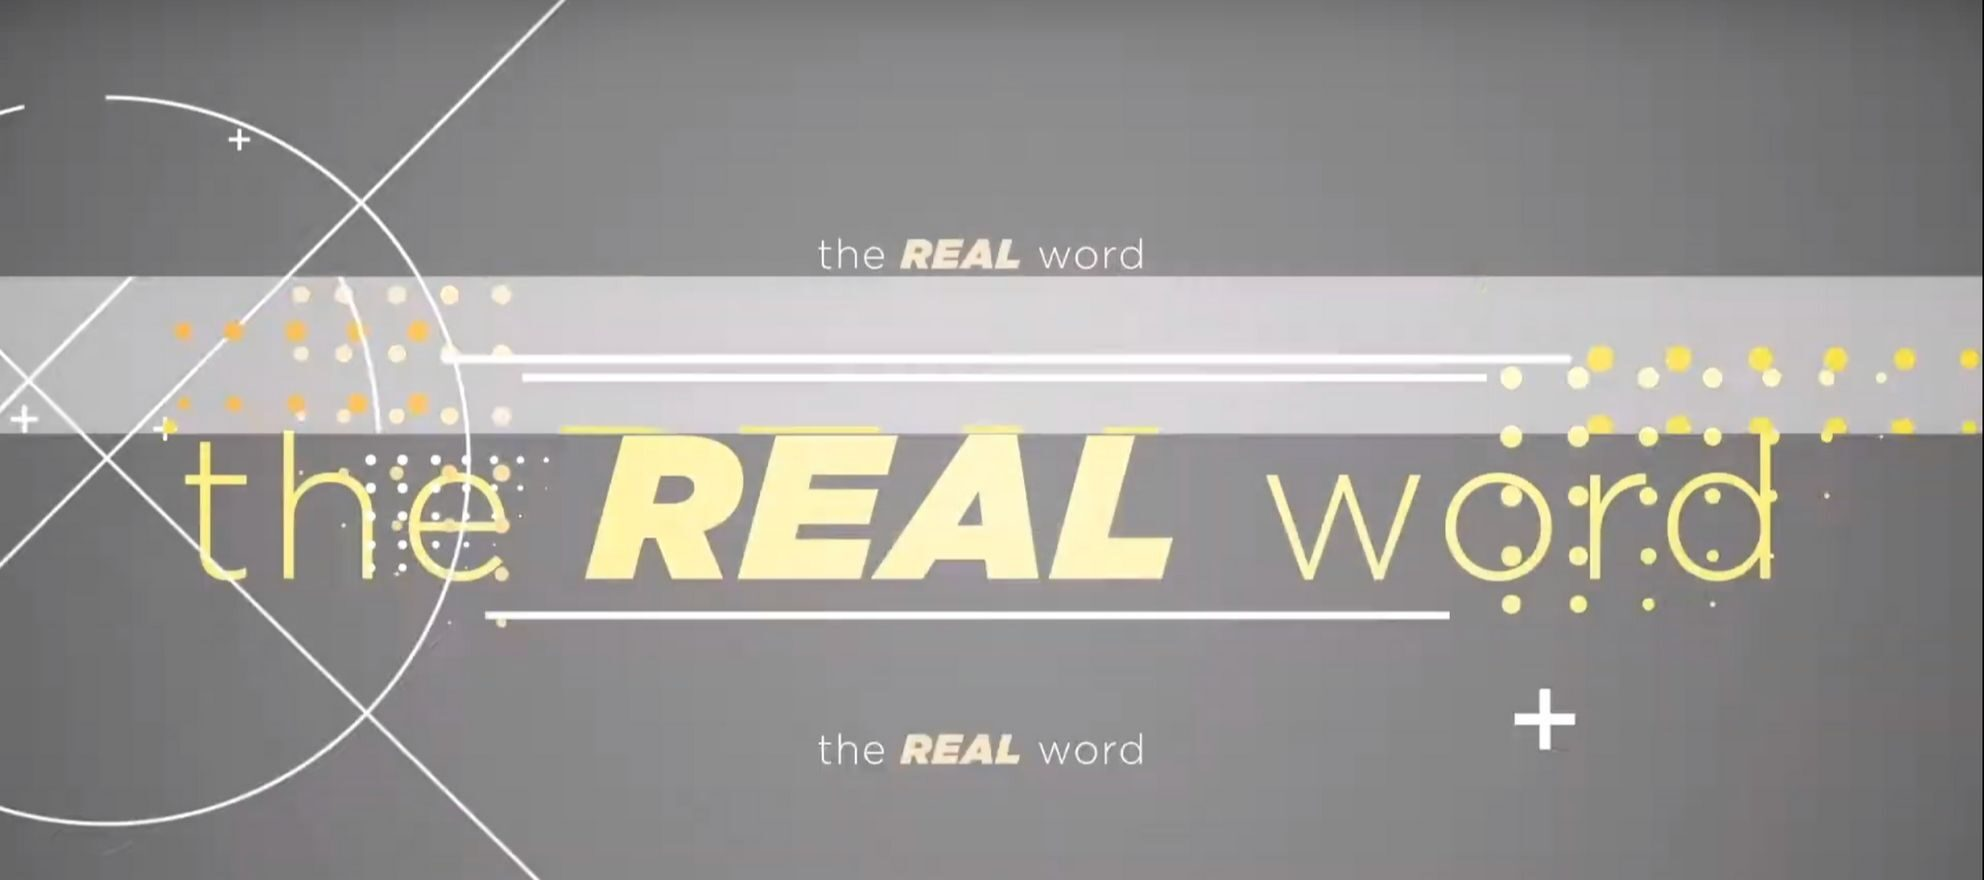 The Real Word: Wall Street's kinship with real estate